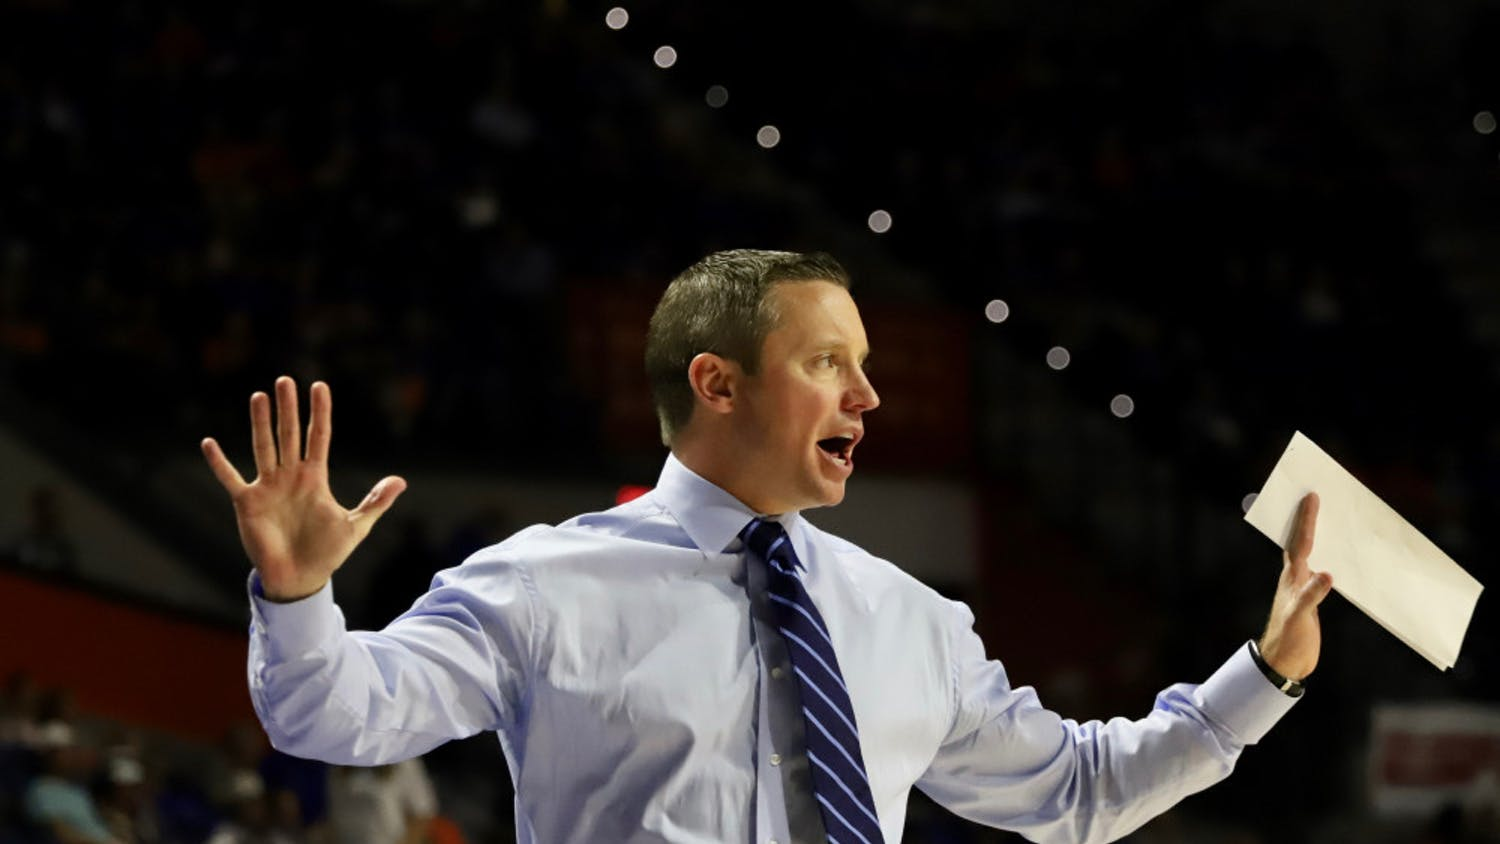 Gators coach Mike White is impressed with what he's seen from Boston College already this season. Florida will play the Eagles Thursday night at 9:30 p.m.